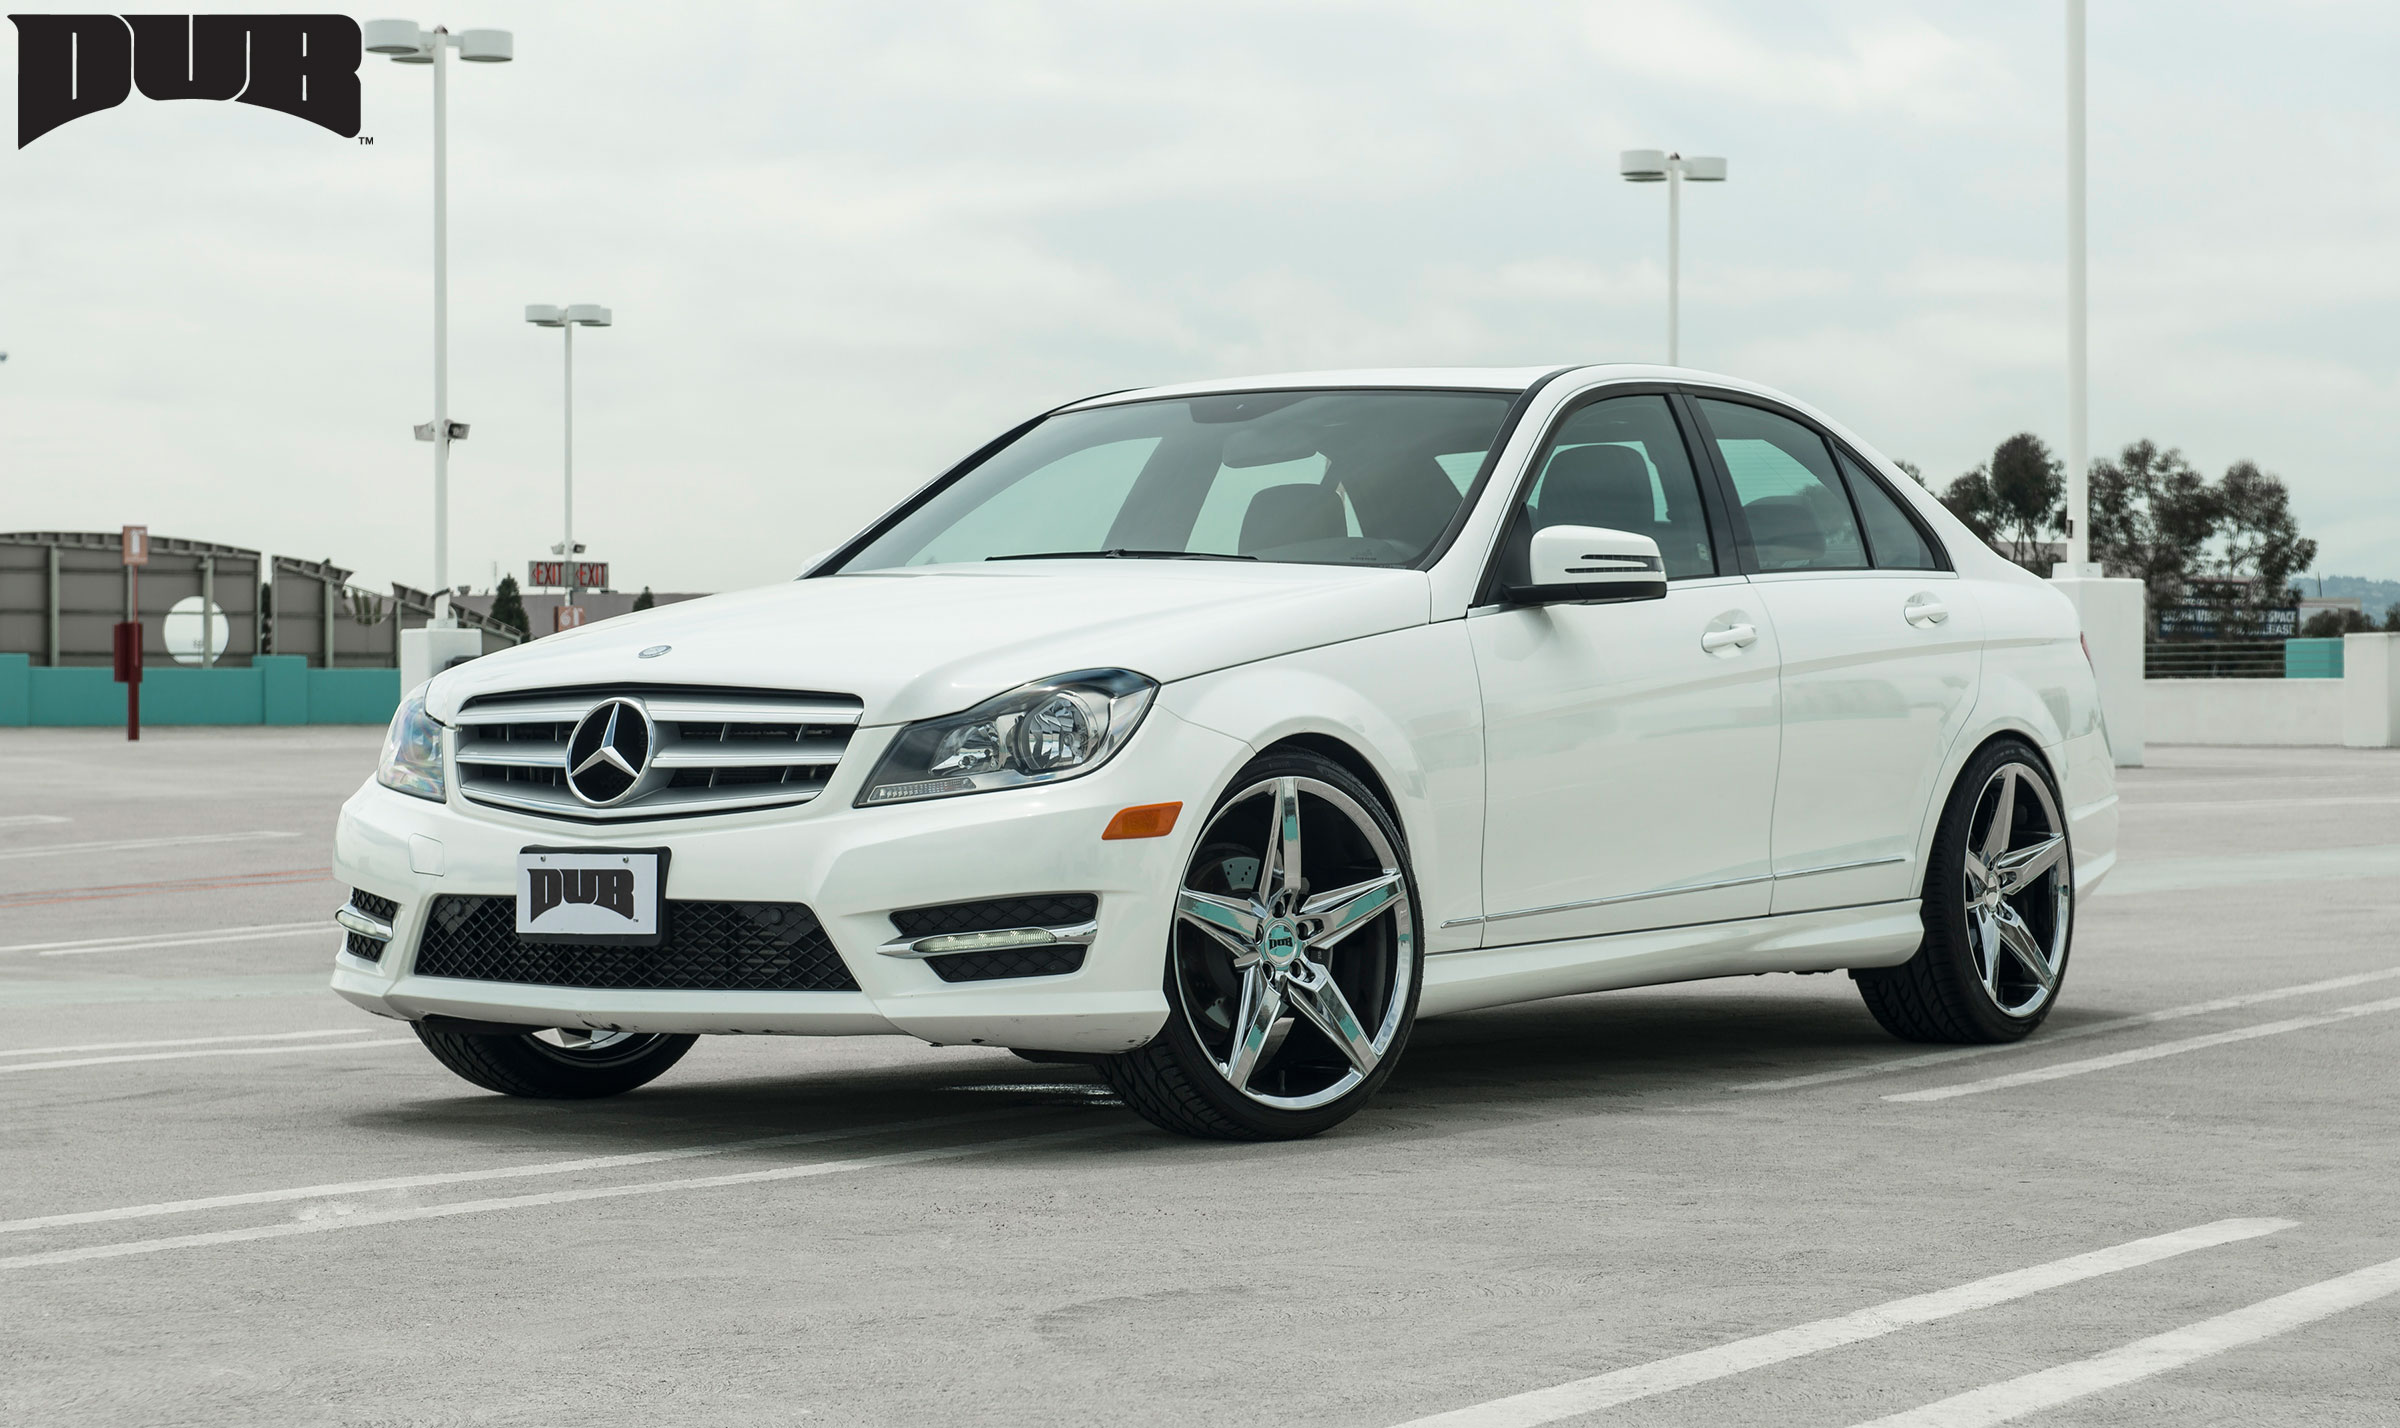 22 Inch Tires >> Mercedes-Benz C250 Lace - S118 Gallery - MHT Wheels Inc.